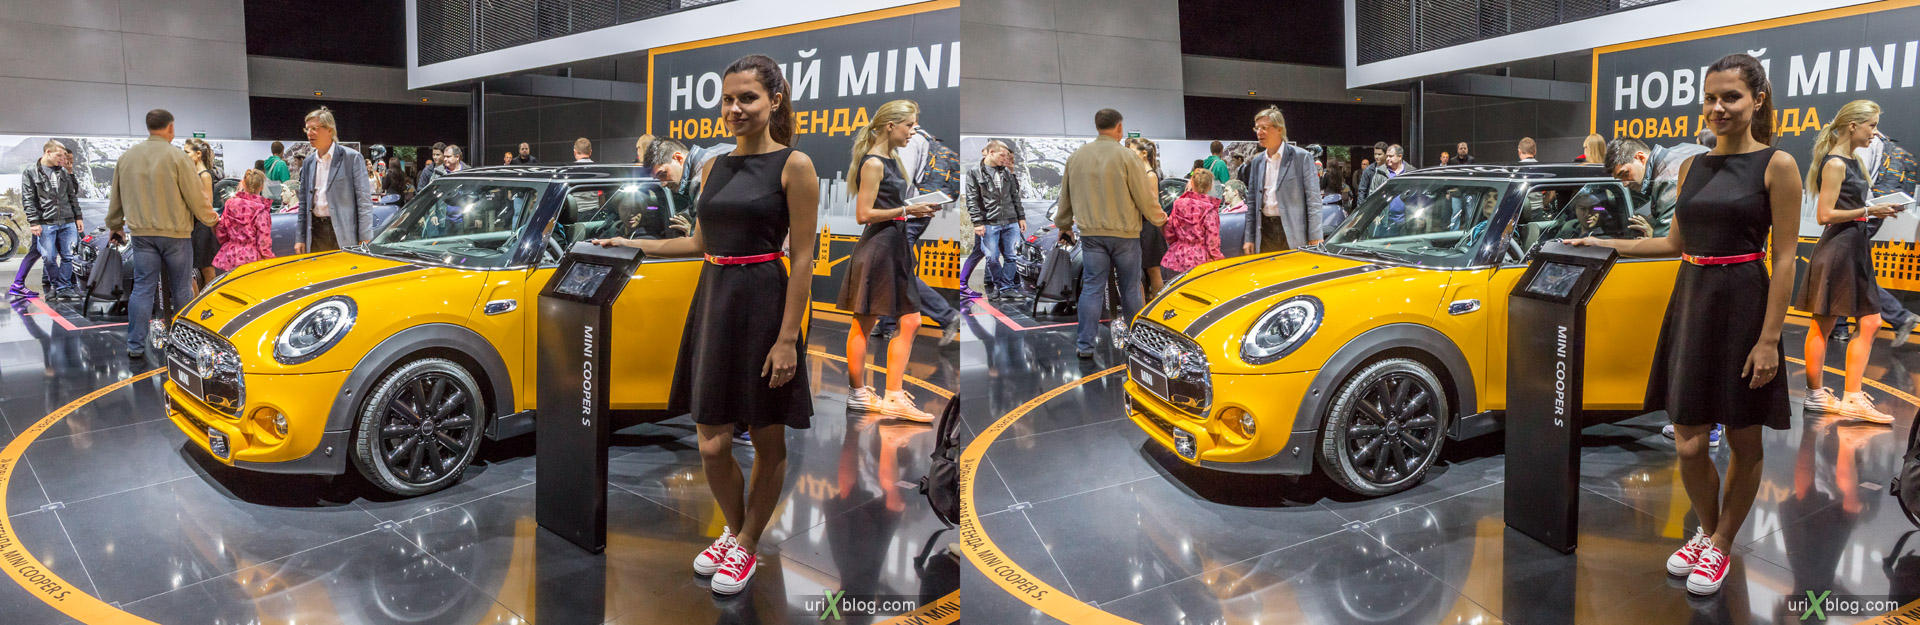 2014, Mini Cooper S, Moscow International Automobile Salon, MIAS, Crocus Expo, Moscow, Russia, augest, 3D, stereo pair, cross-eyed, crossview, cross view stereo pair, stereoscopic